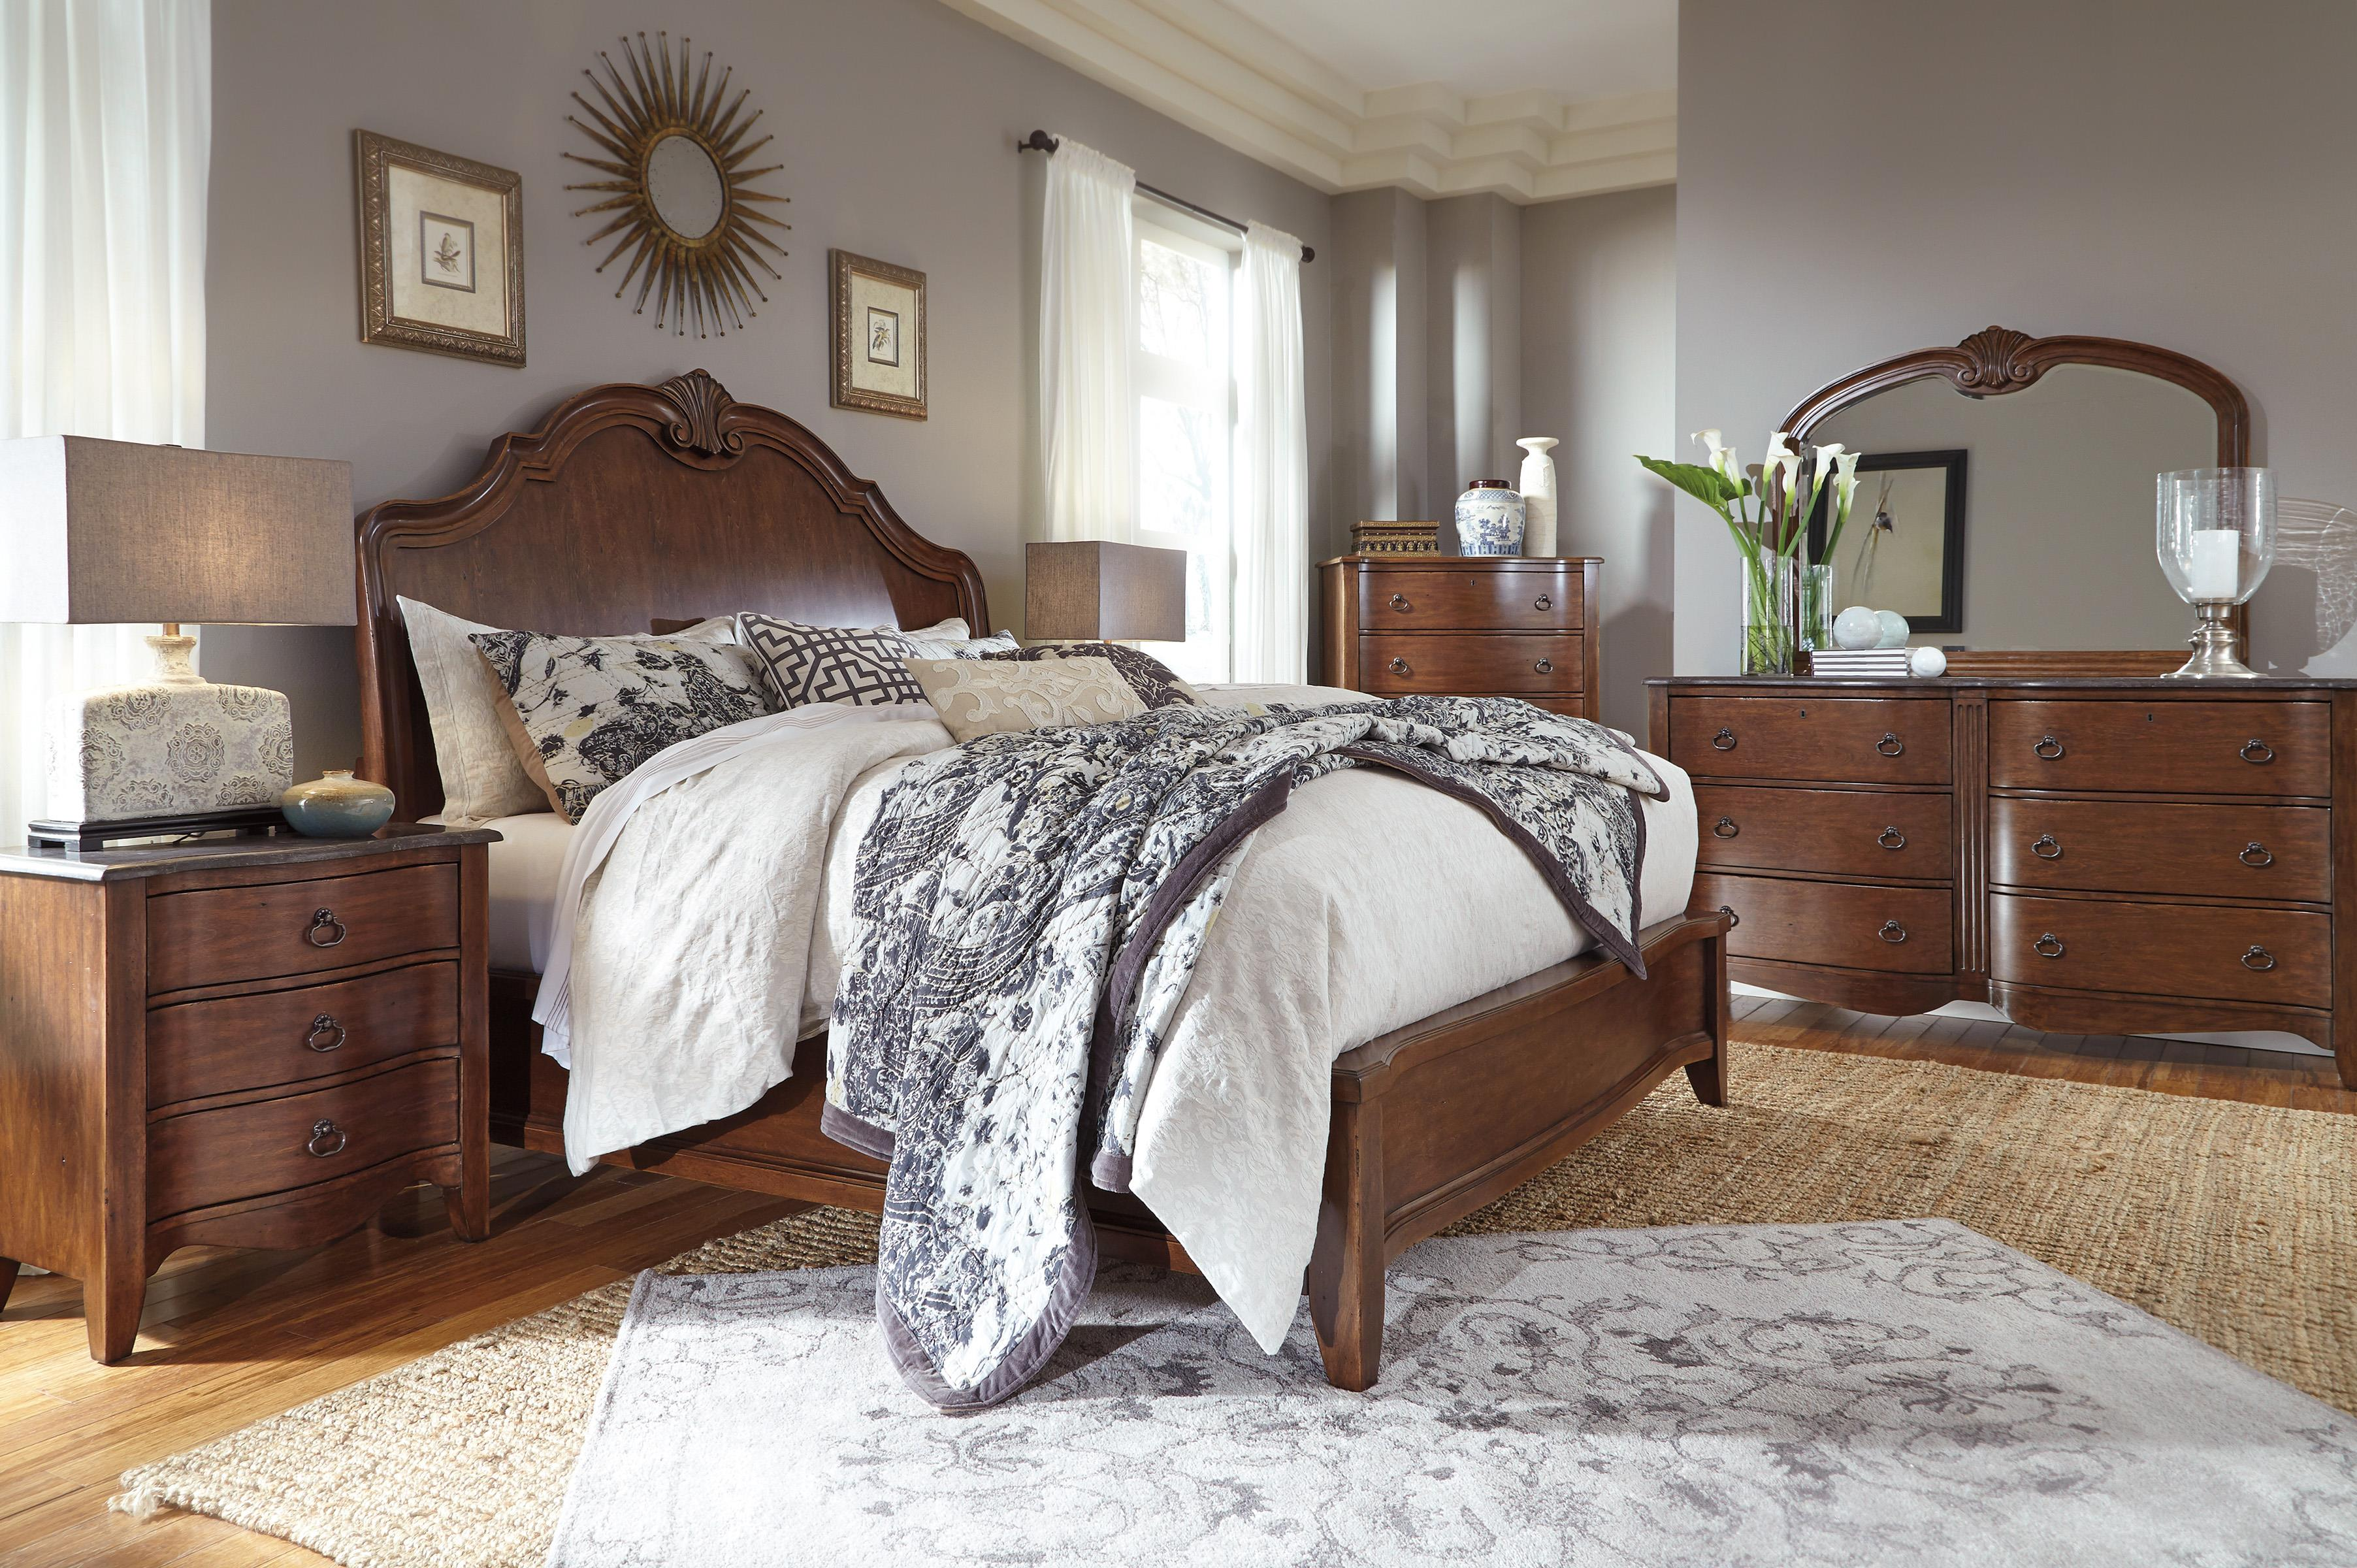 Signature Design by Ashley Balinder California King Bedroom Group - Item Number: B708 CK Bedroom Group 2